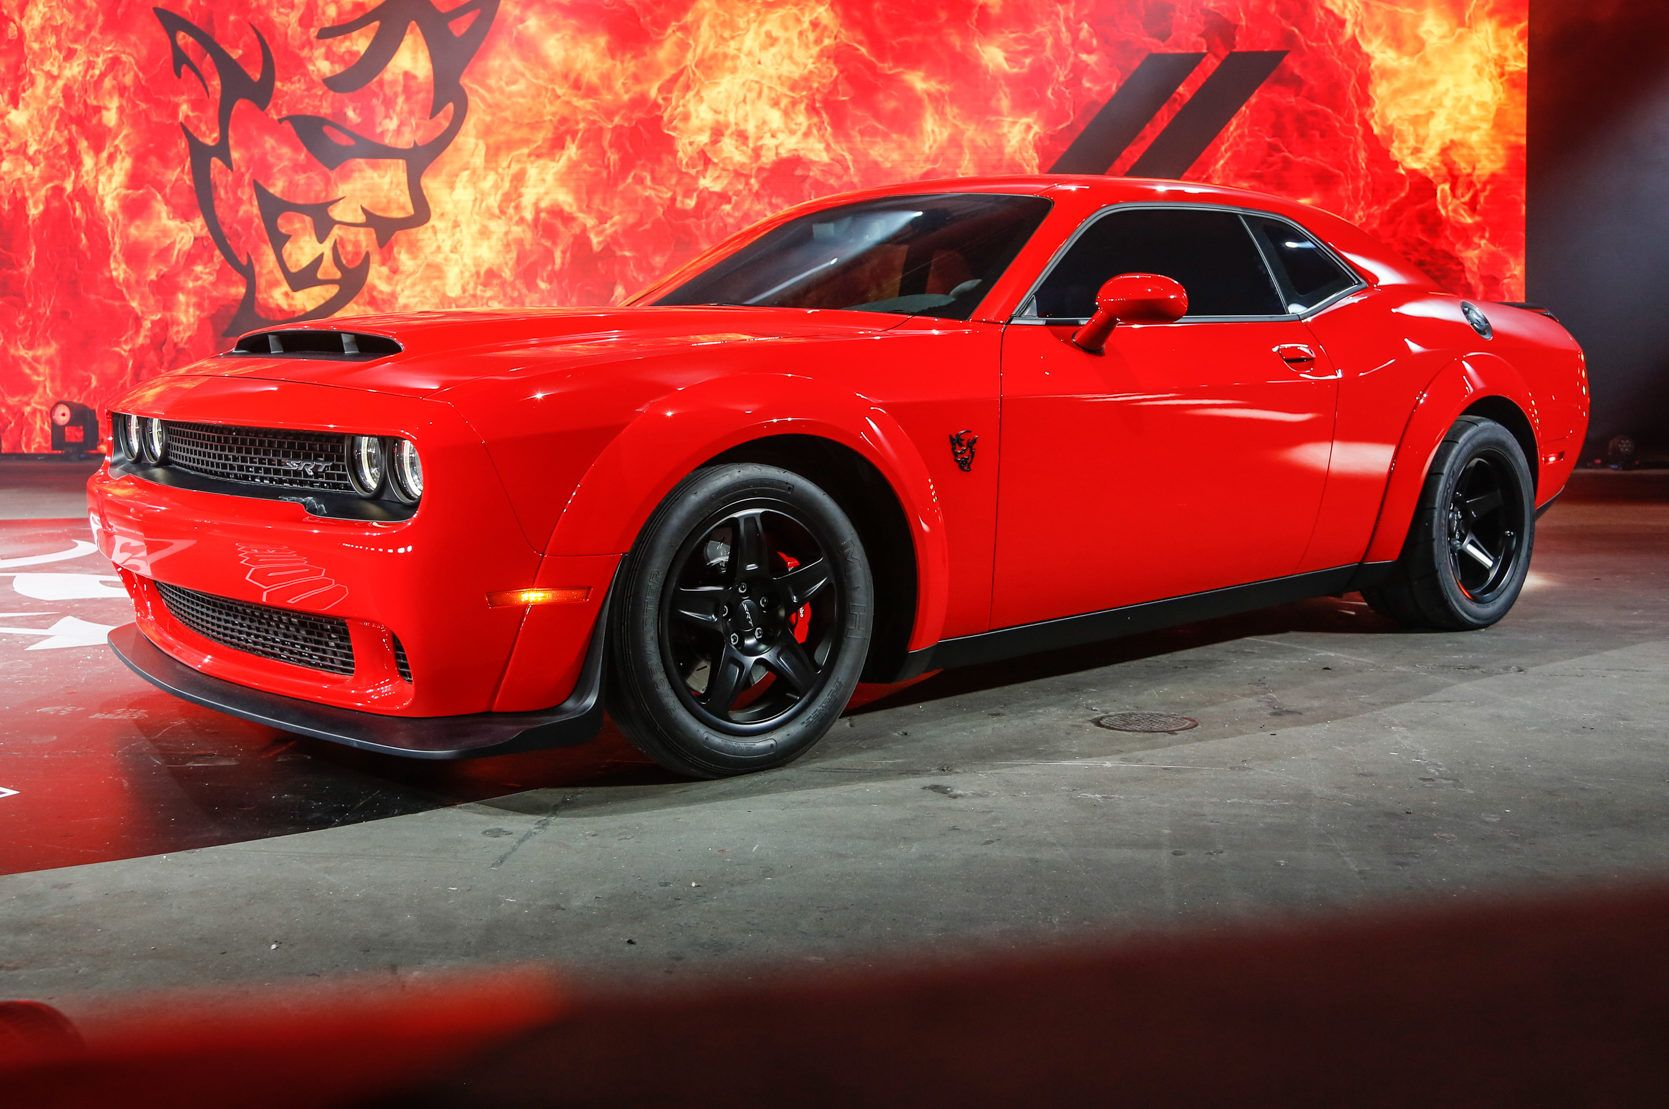 Dodge Unveiled What It Claims Is The Fastest Muscle Car Ever The 2018 Challenger Srt Demon 2018 Dodge Challenger Srt Challenger Srt Demon Dodge Challenger Srt